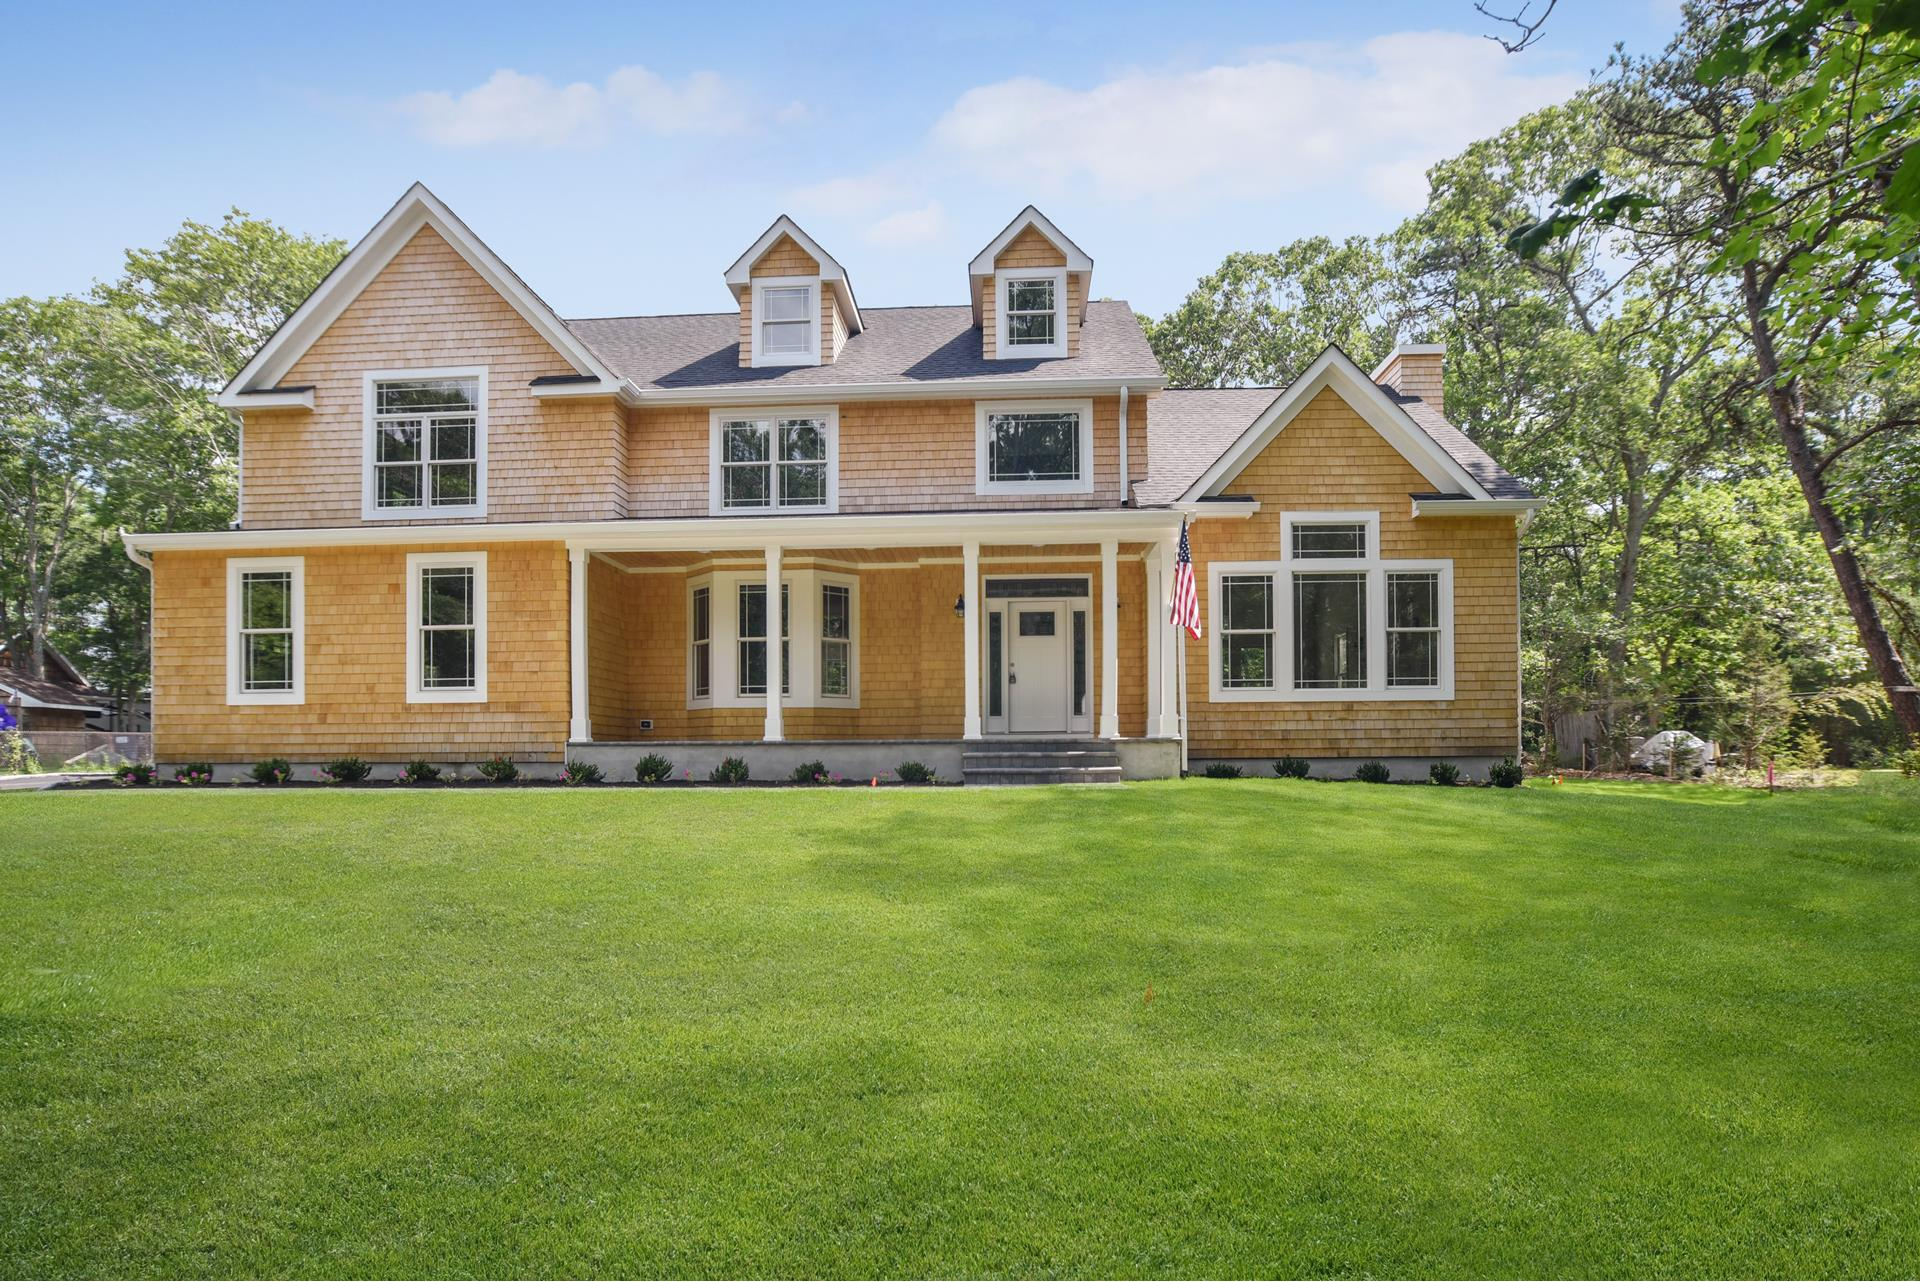 25 Lakewood Ave - E. Quogue, New York